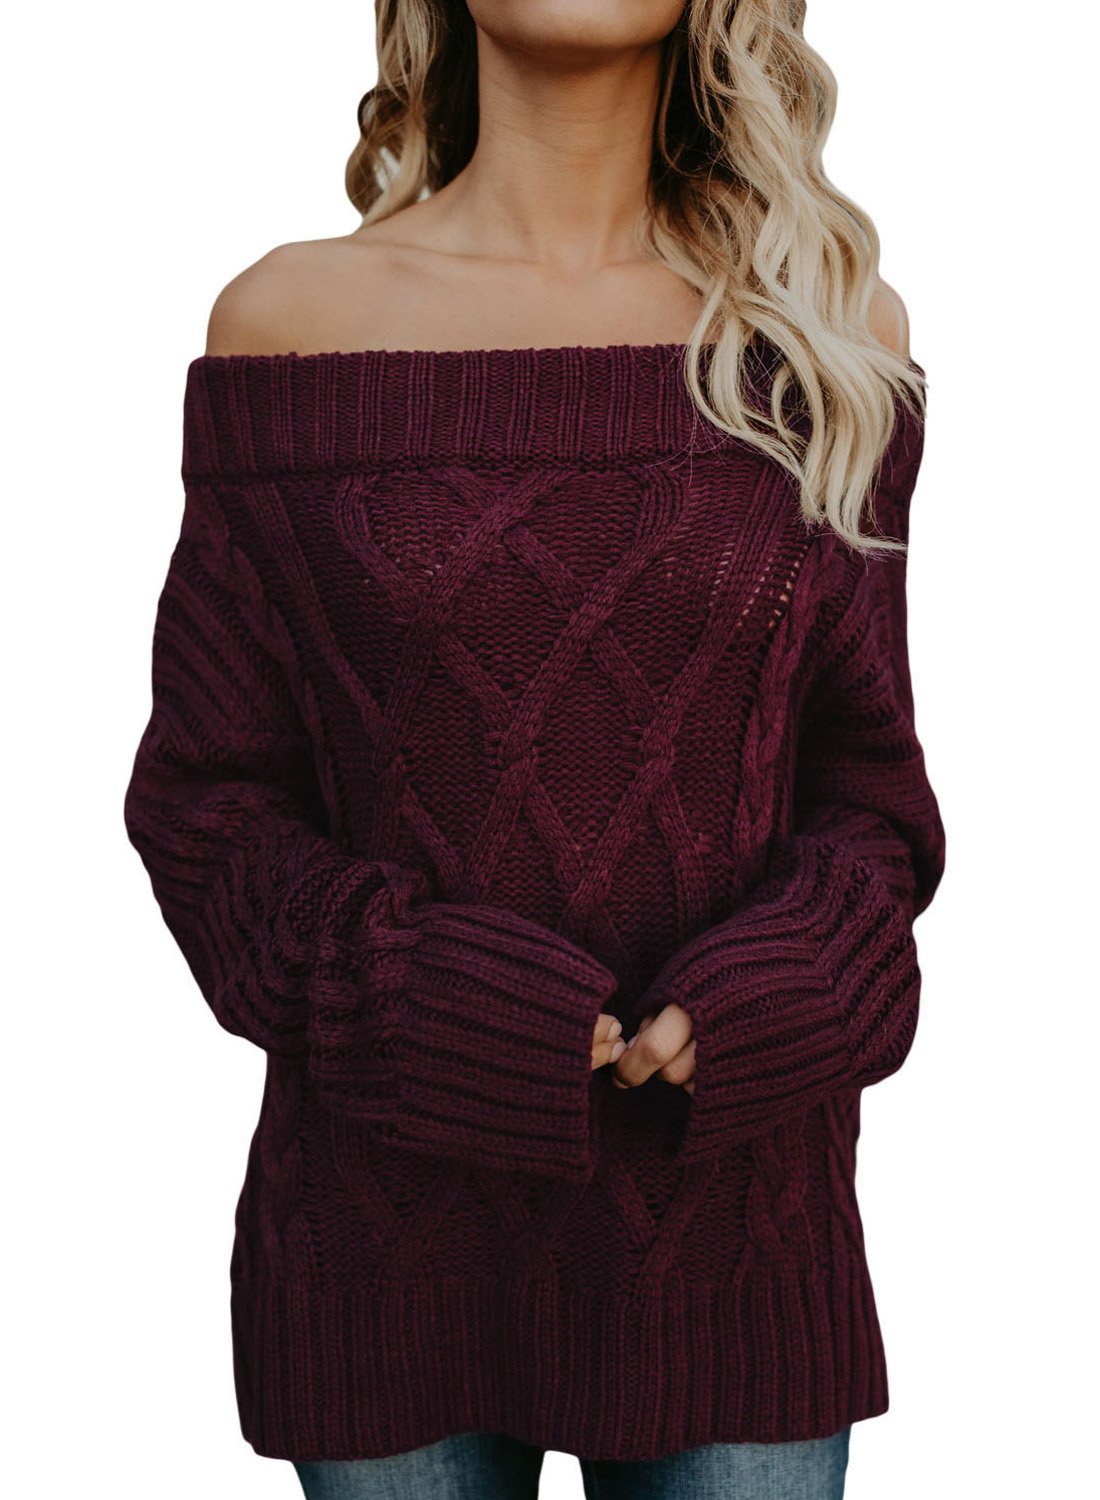 Women's Long Sleeve Off Shoulder Casual Loose Knit Pullover Sweaters Large 12 14 Wine